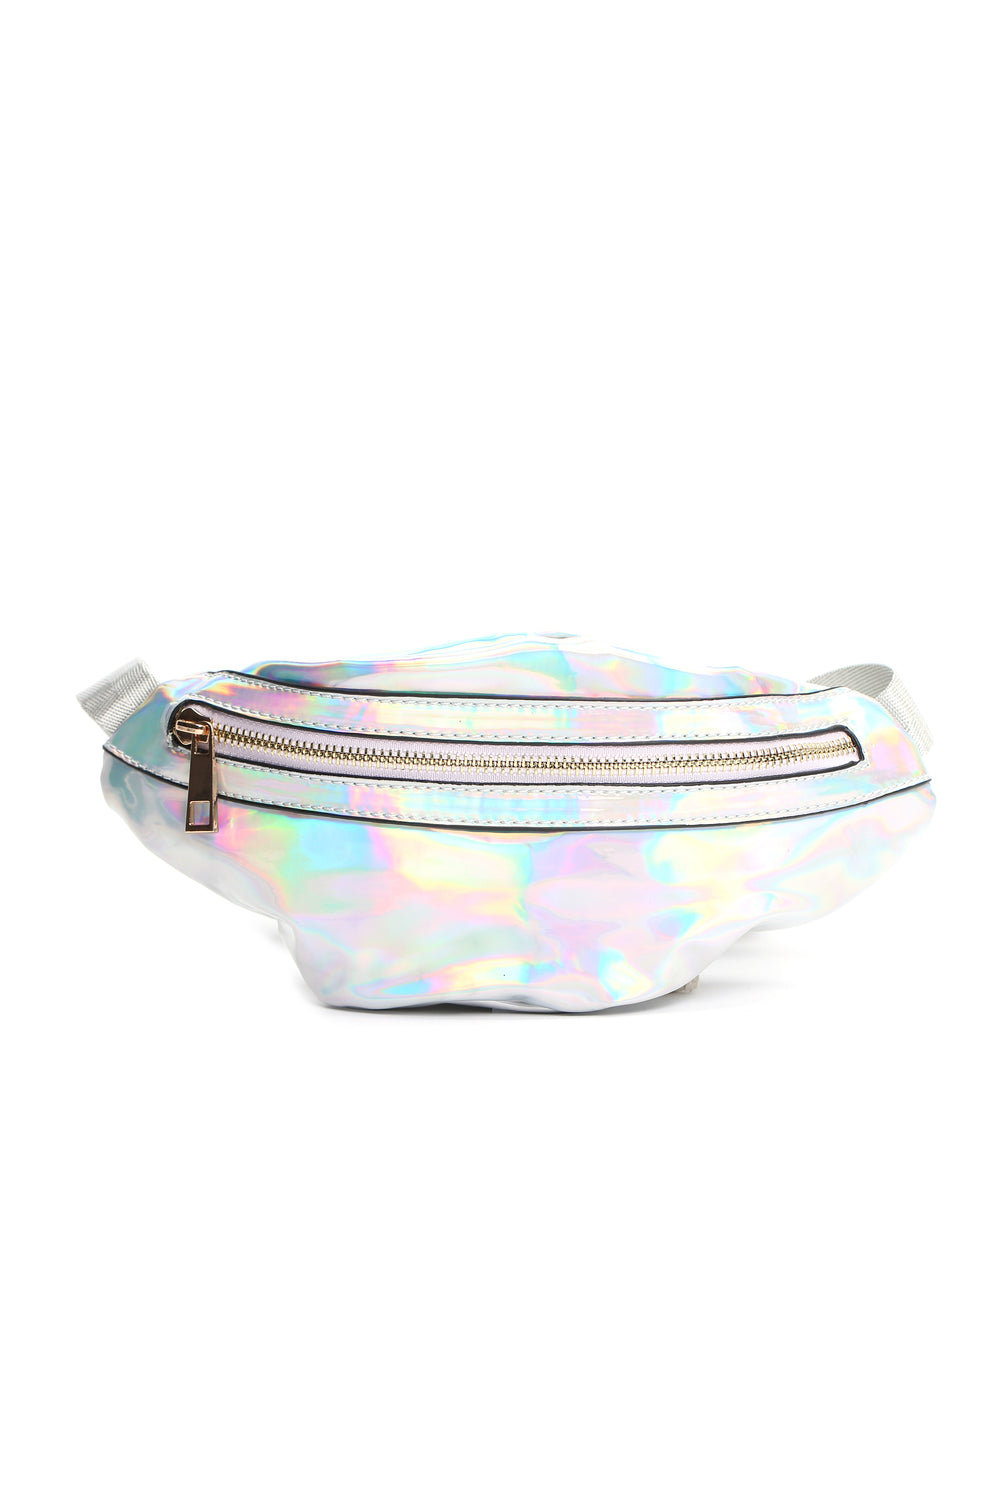 Hey Holo What's Up Fanny Pack - Silver